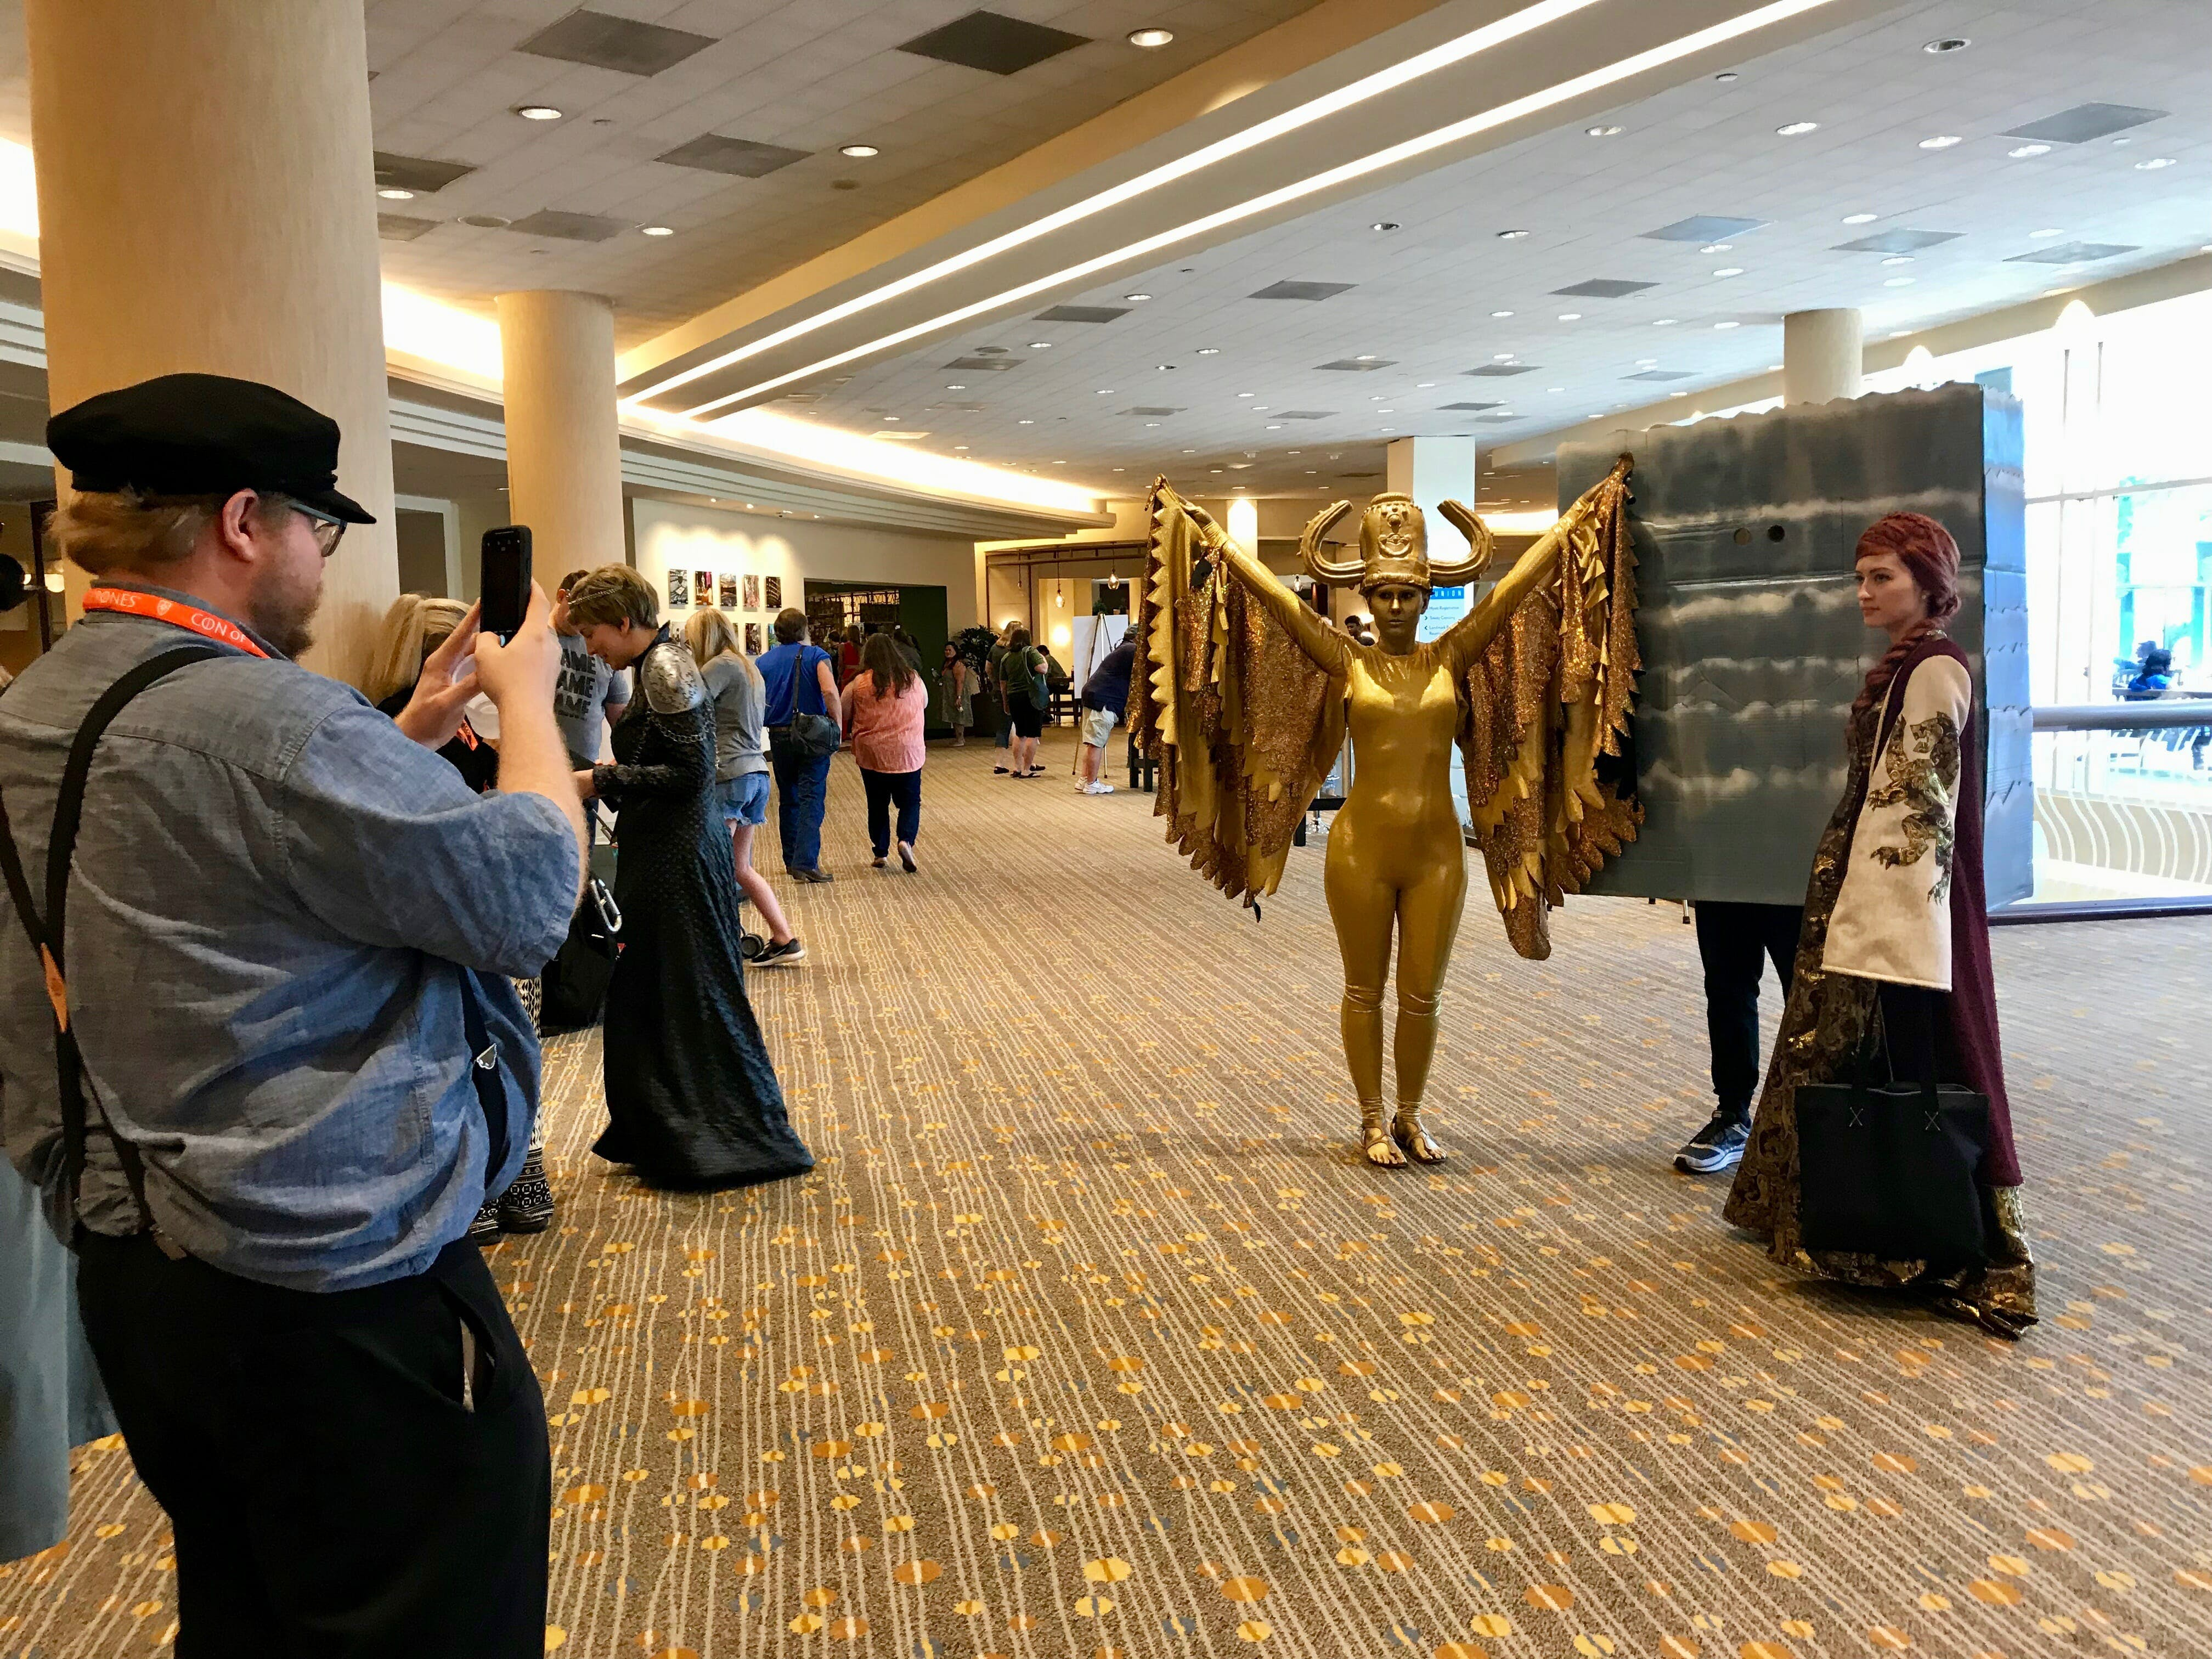 game of thrones cosplay - con of thrones grrm wall harpy sansa